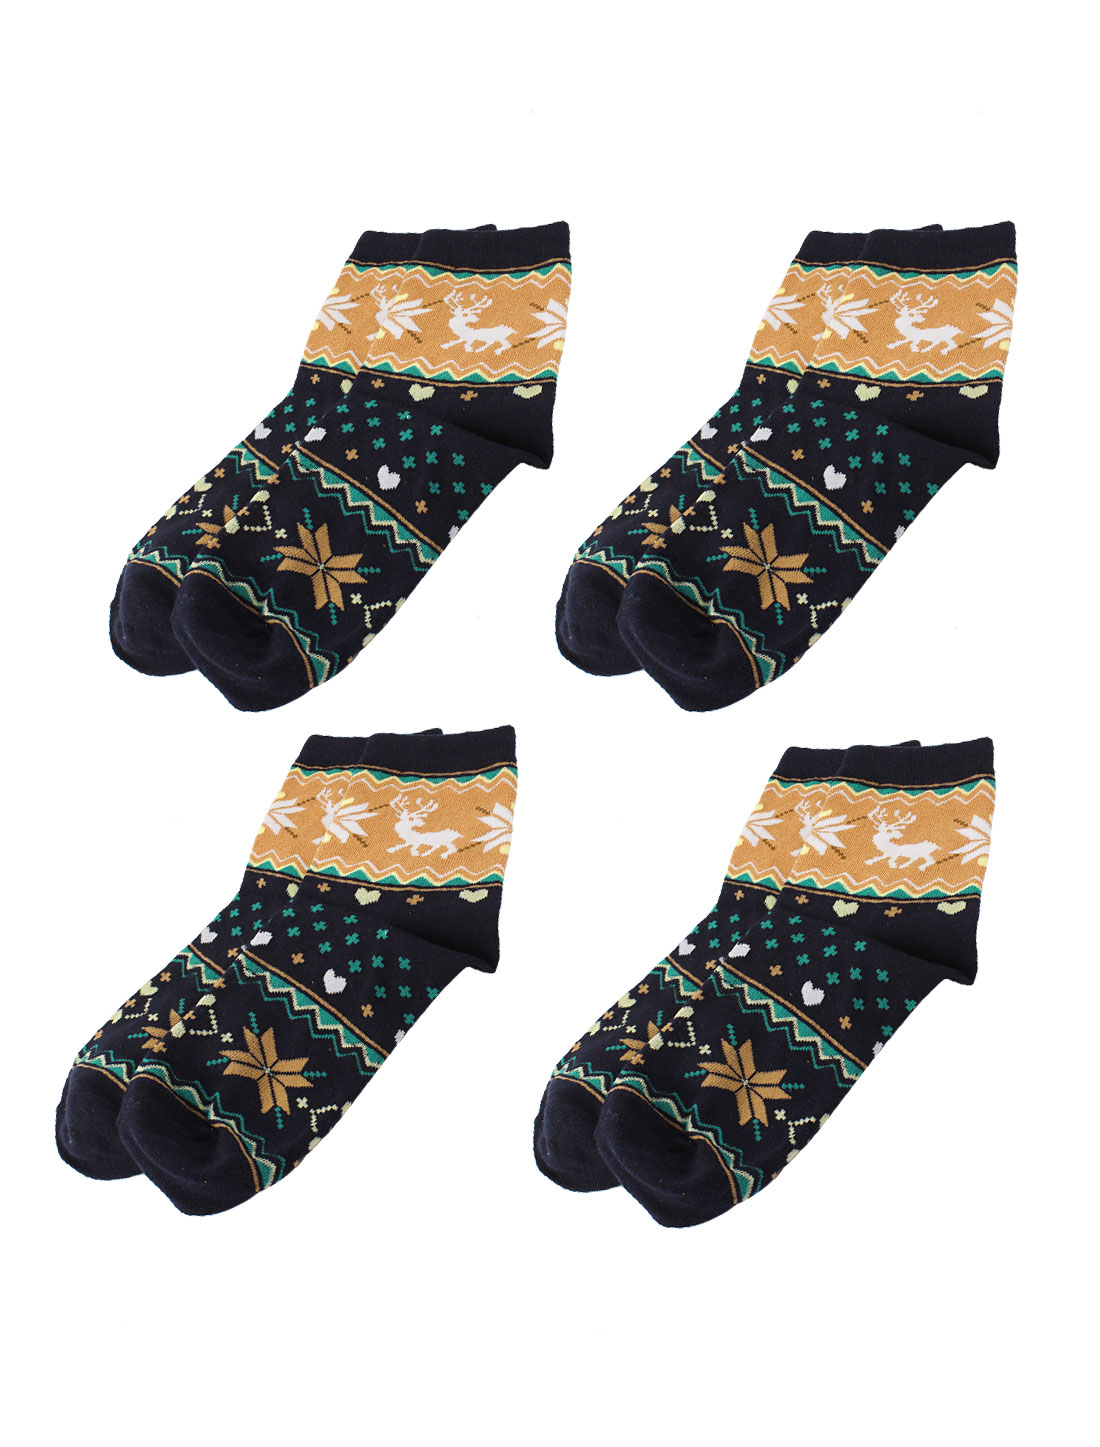 Lady Deer Heart Printed Elastic Ankle Casual Socks Black Brown 4 Pairs